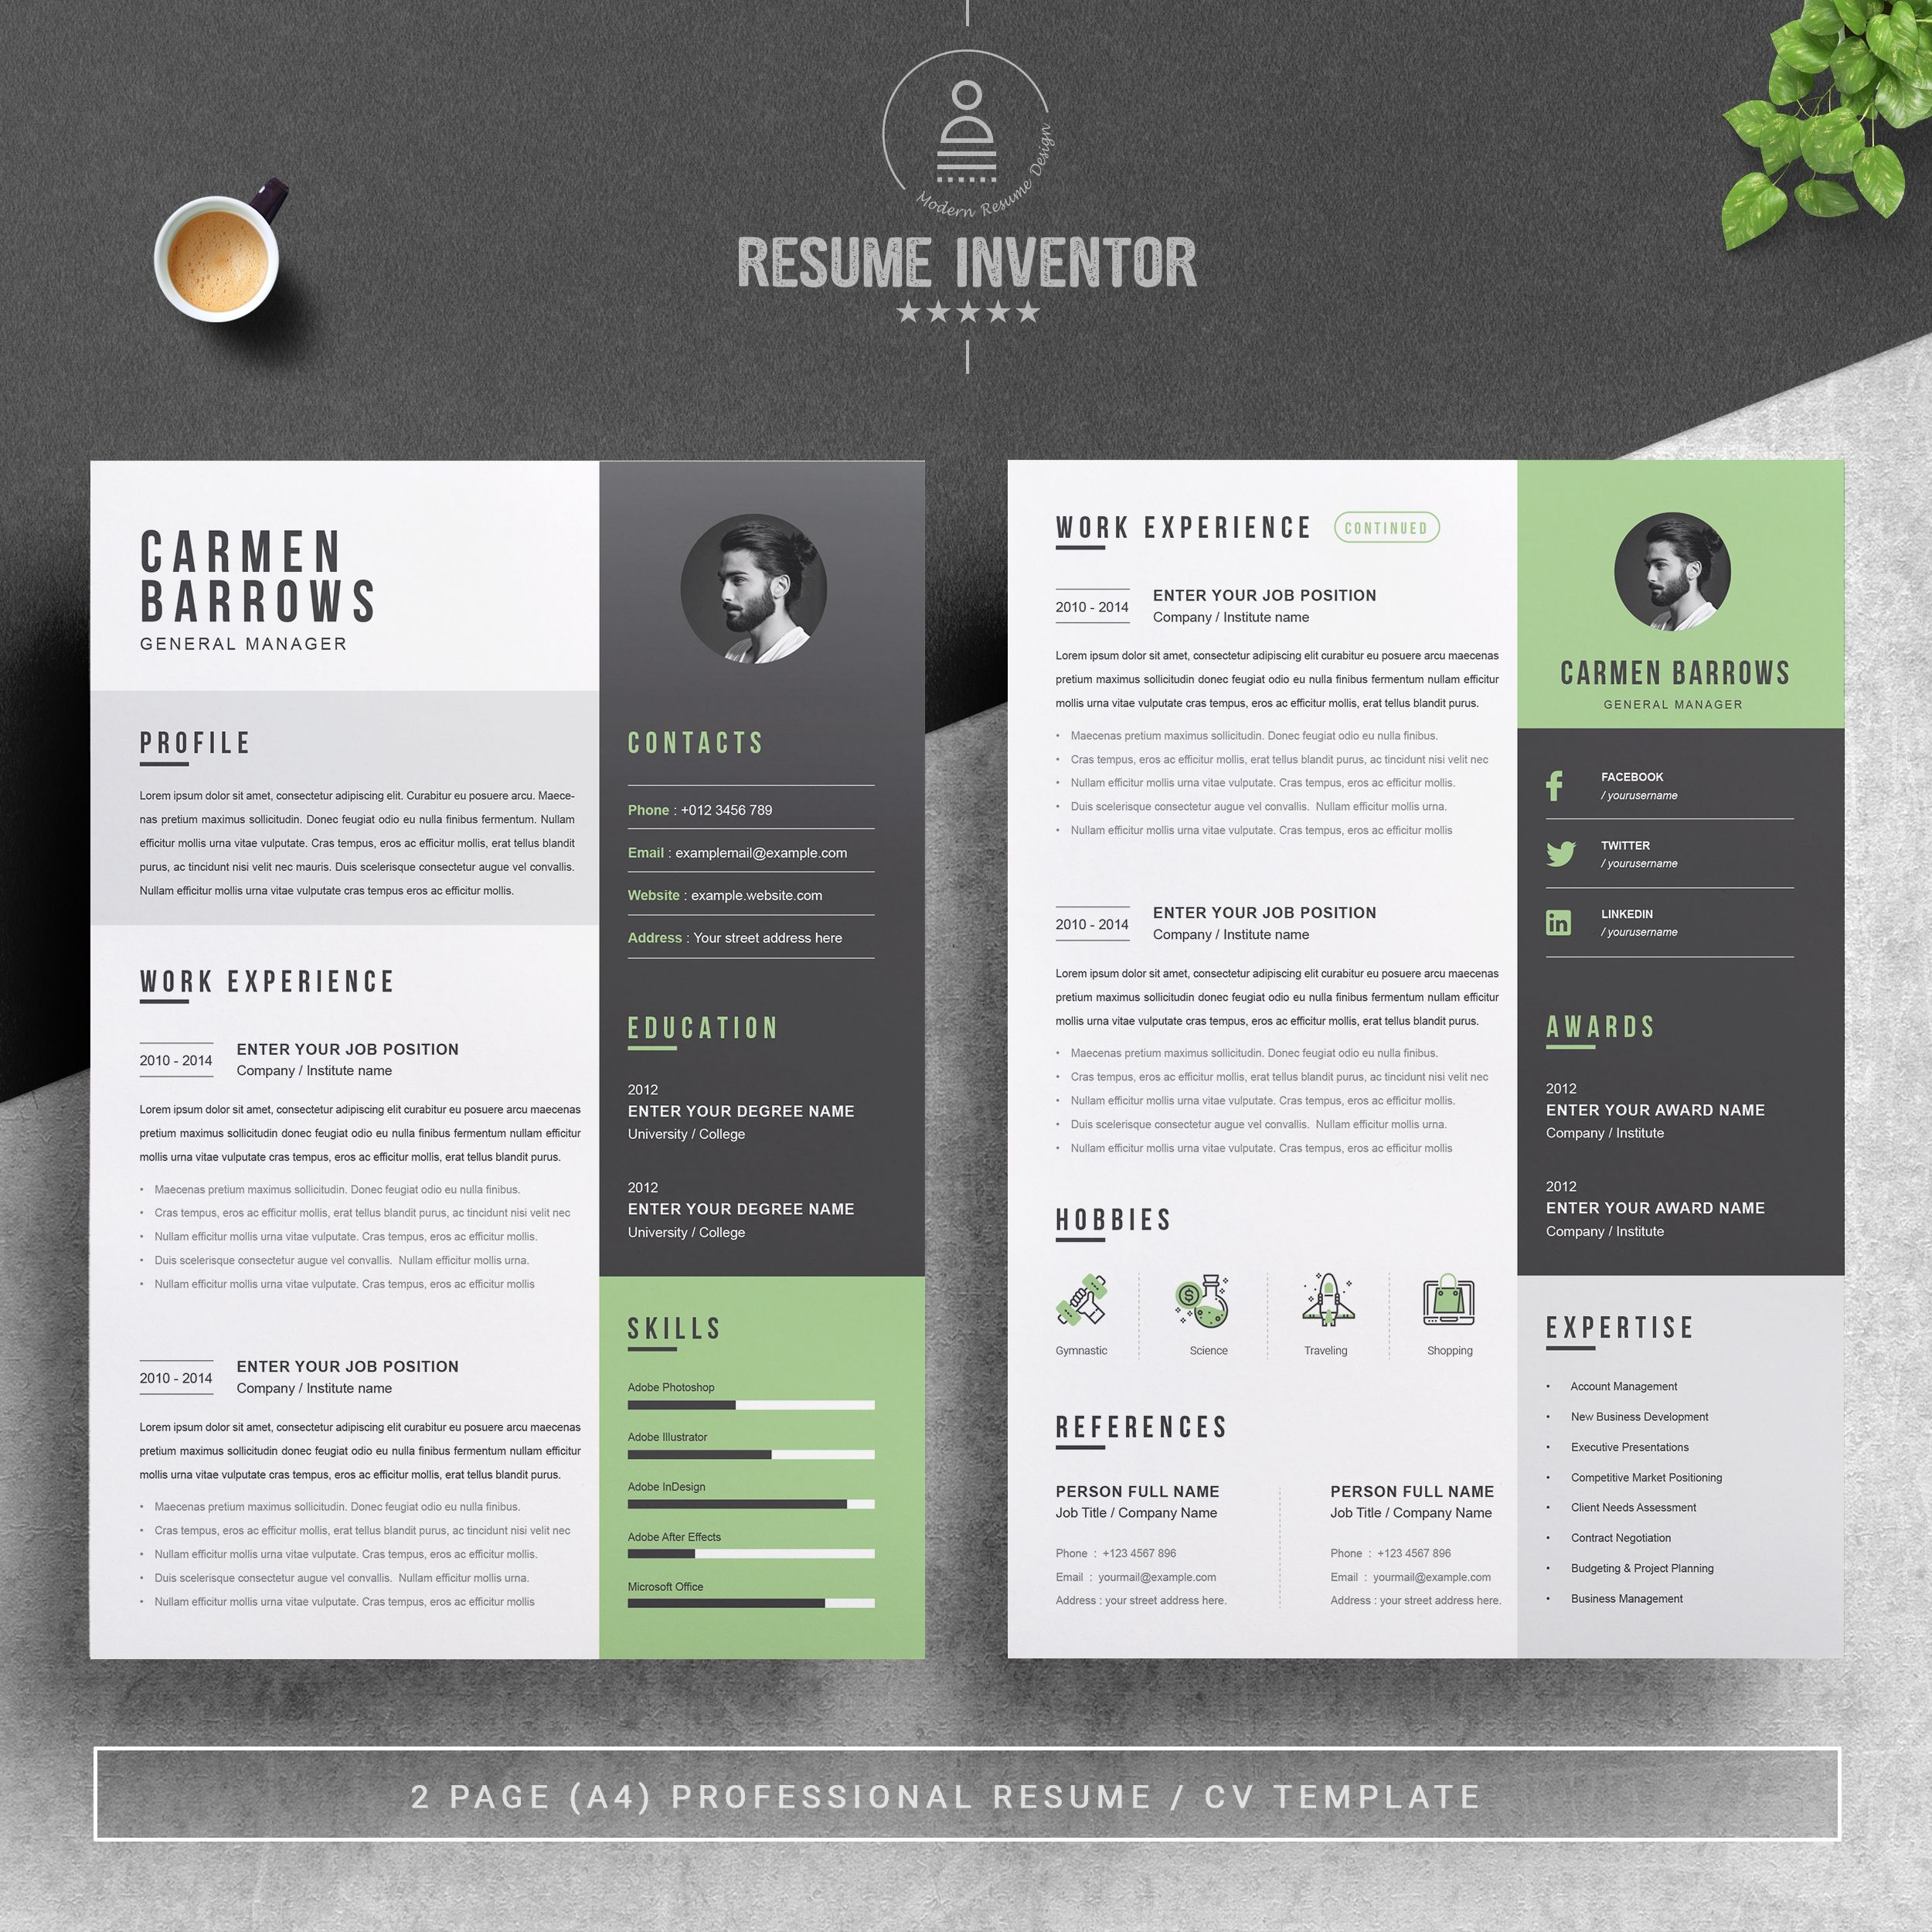 best free resume templates for architects arch2o make and save pattern maker sample Resume Make And Save Resume For Free